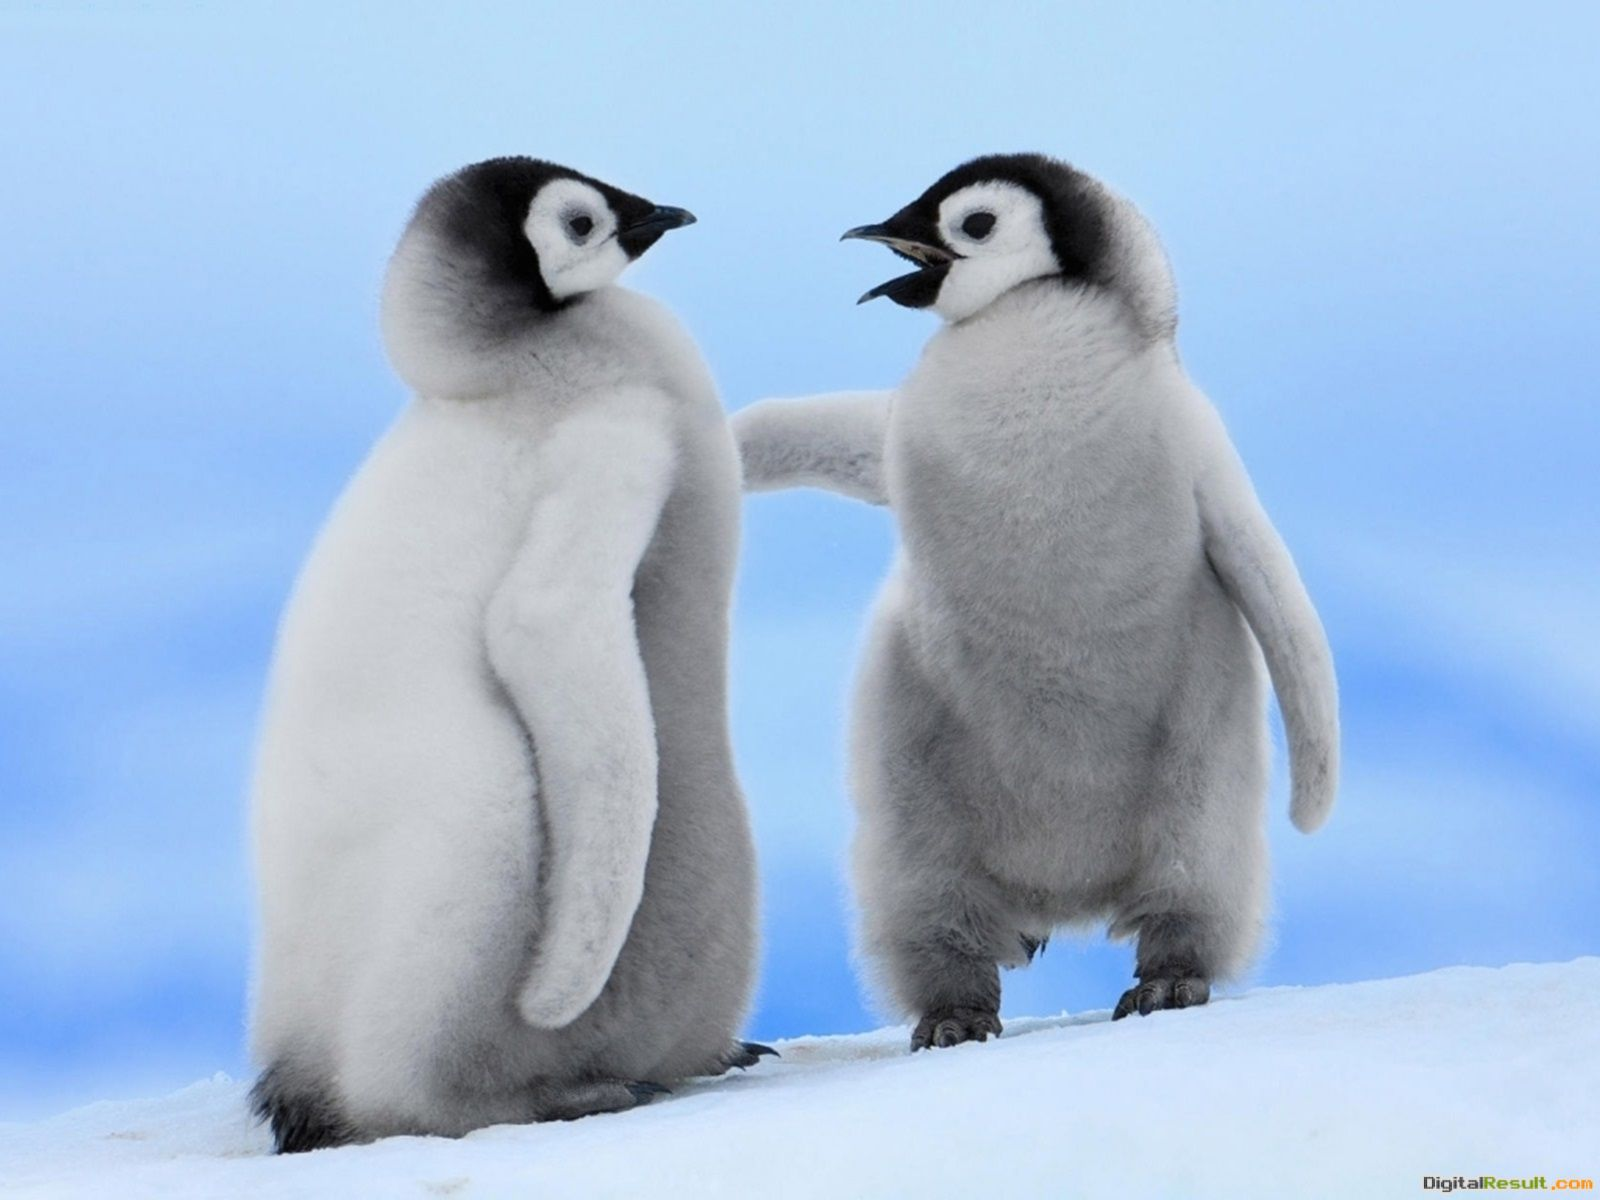 Cute Penguins Couple Photos,HD Wallpapers,Images,Pictures 692